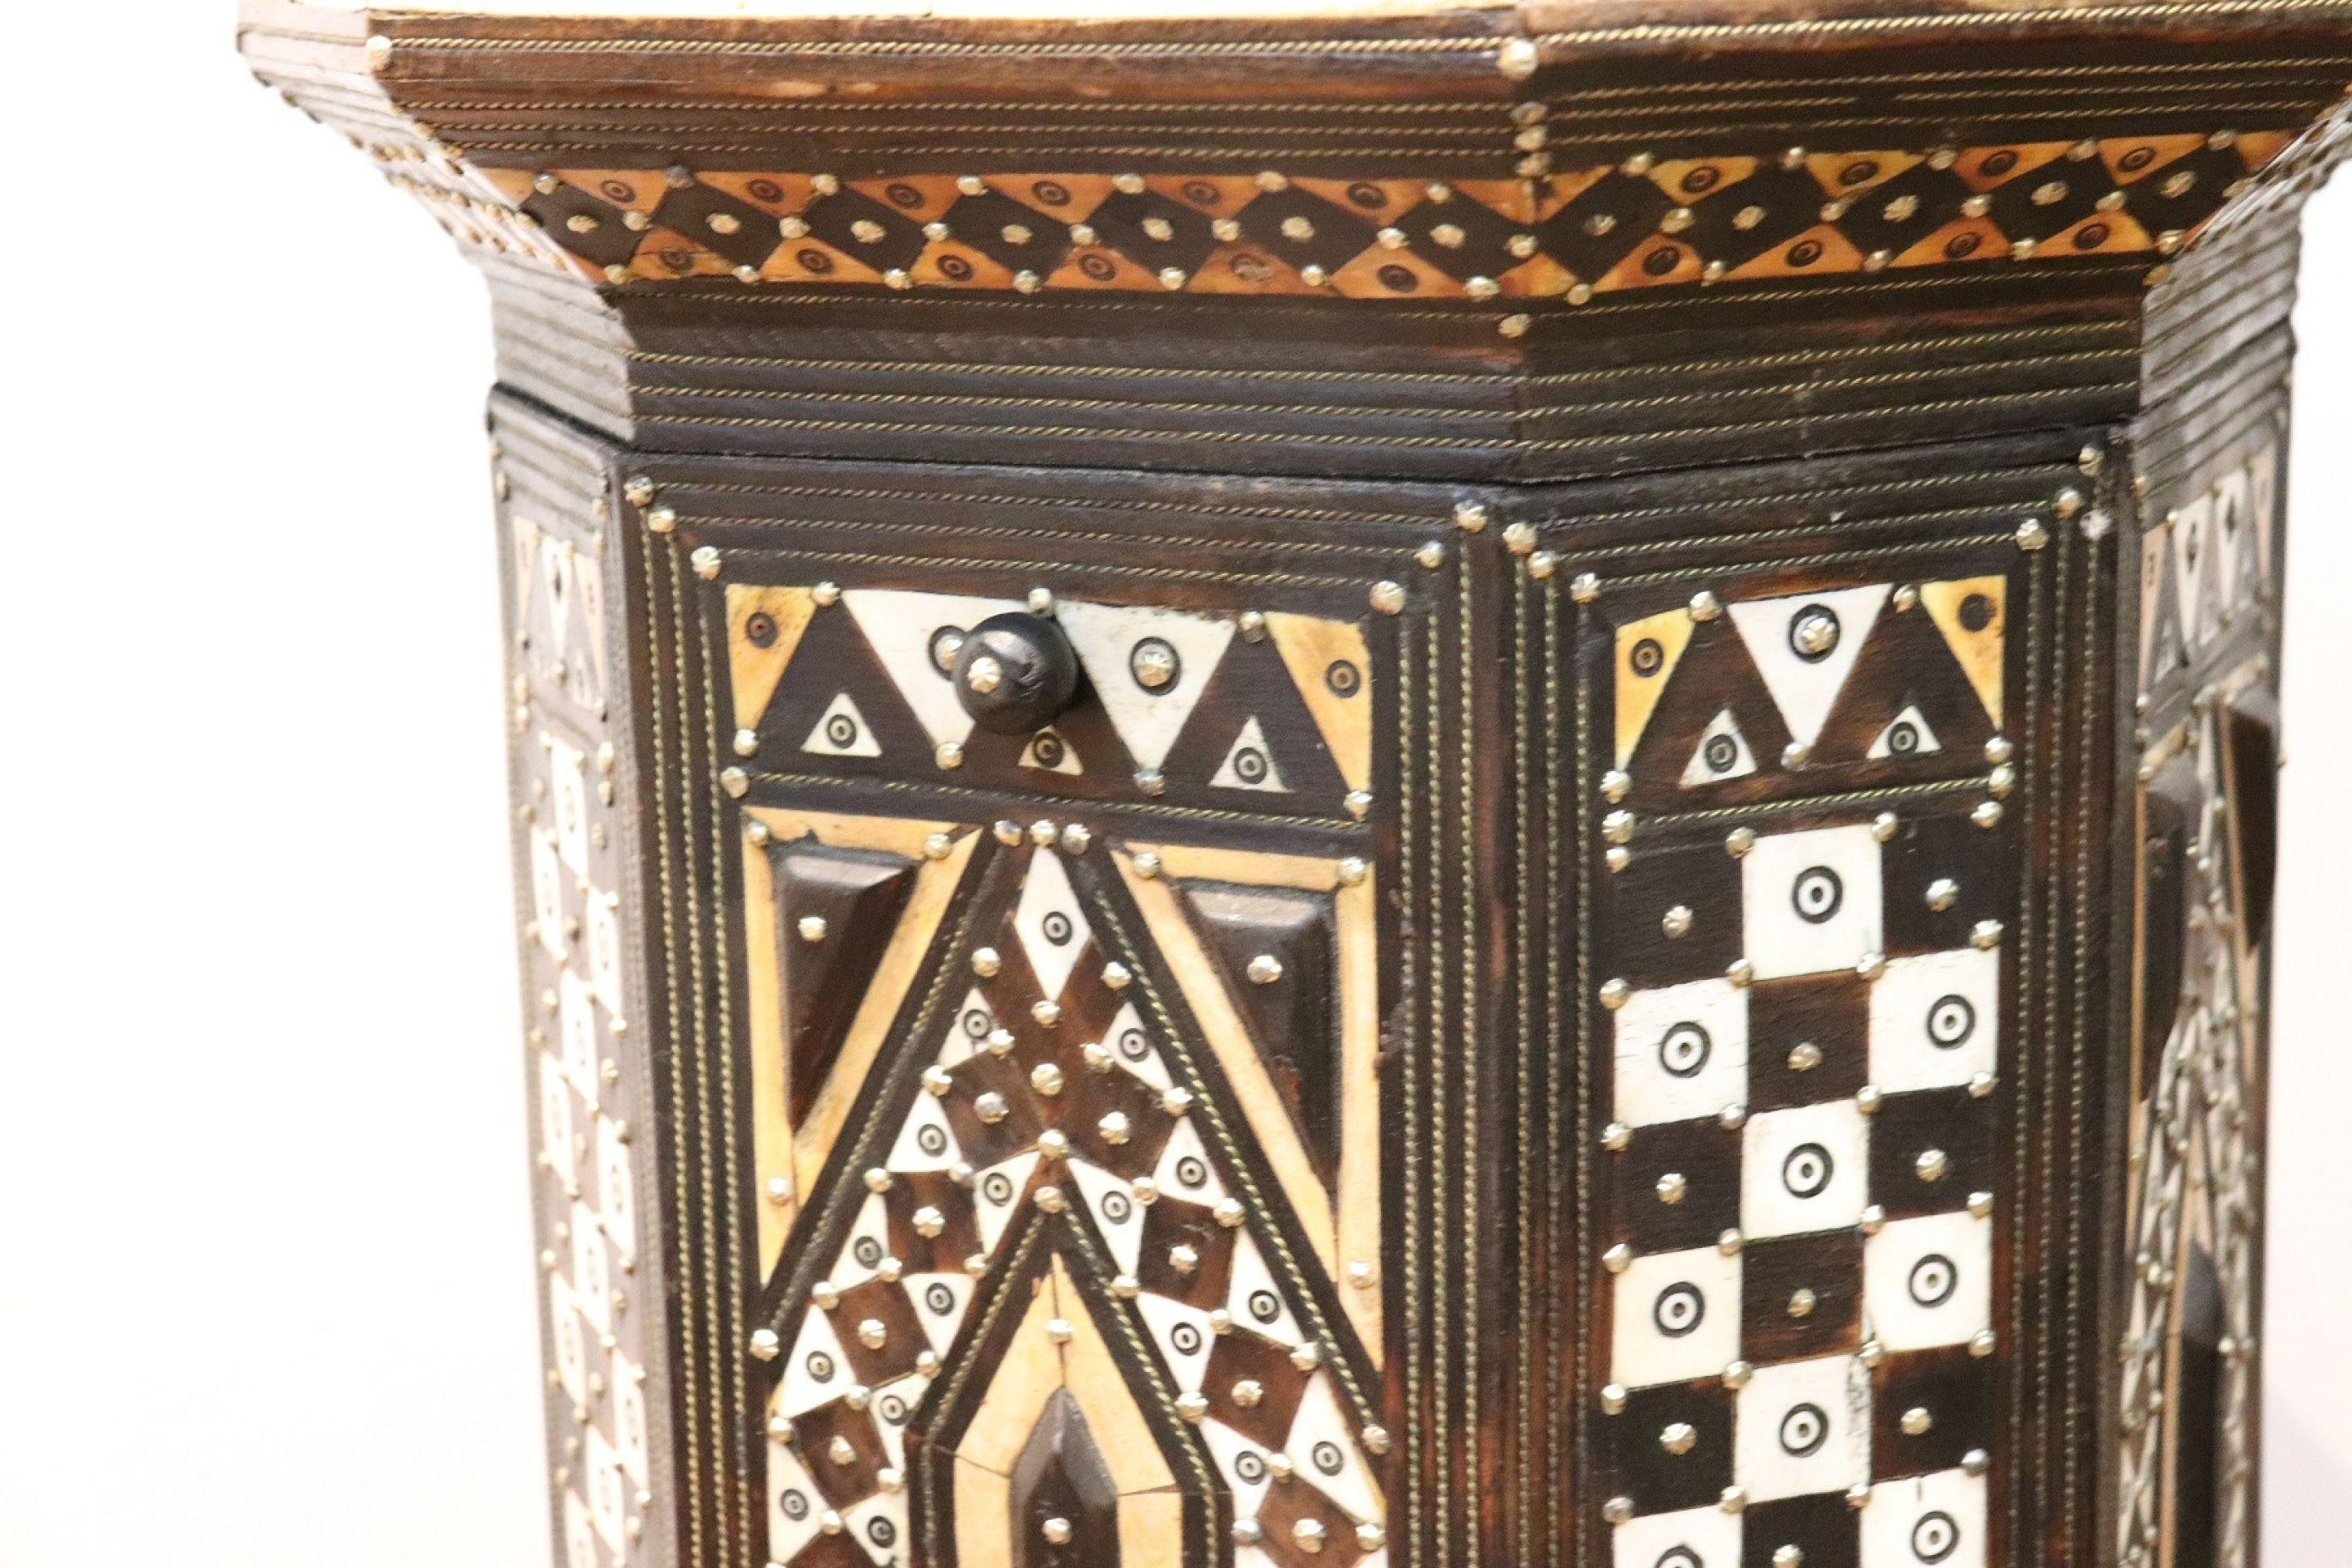 20th Century Italian Carlo Bugatti Style Inlay Side Table or Pedestal Table